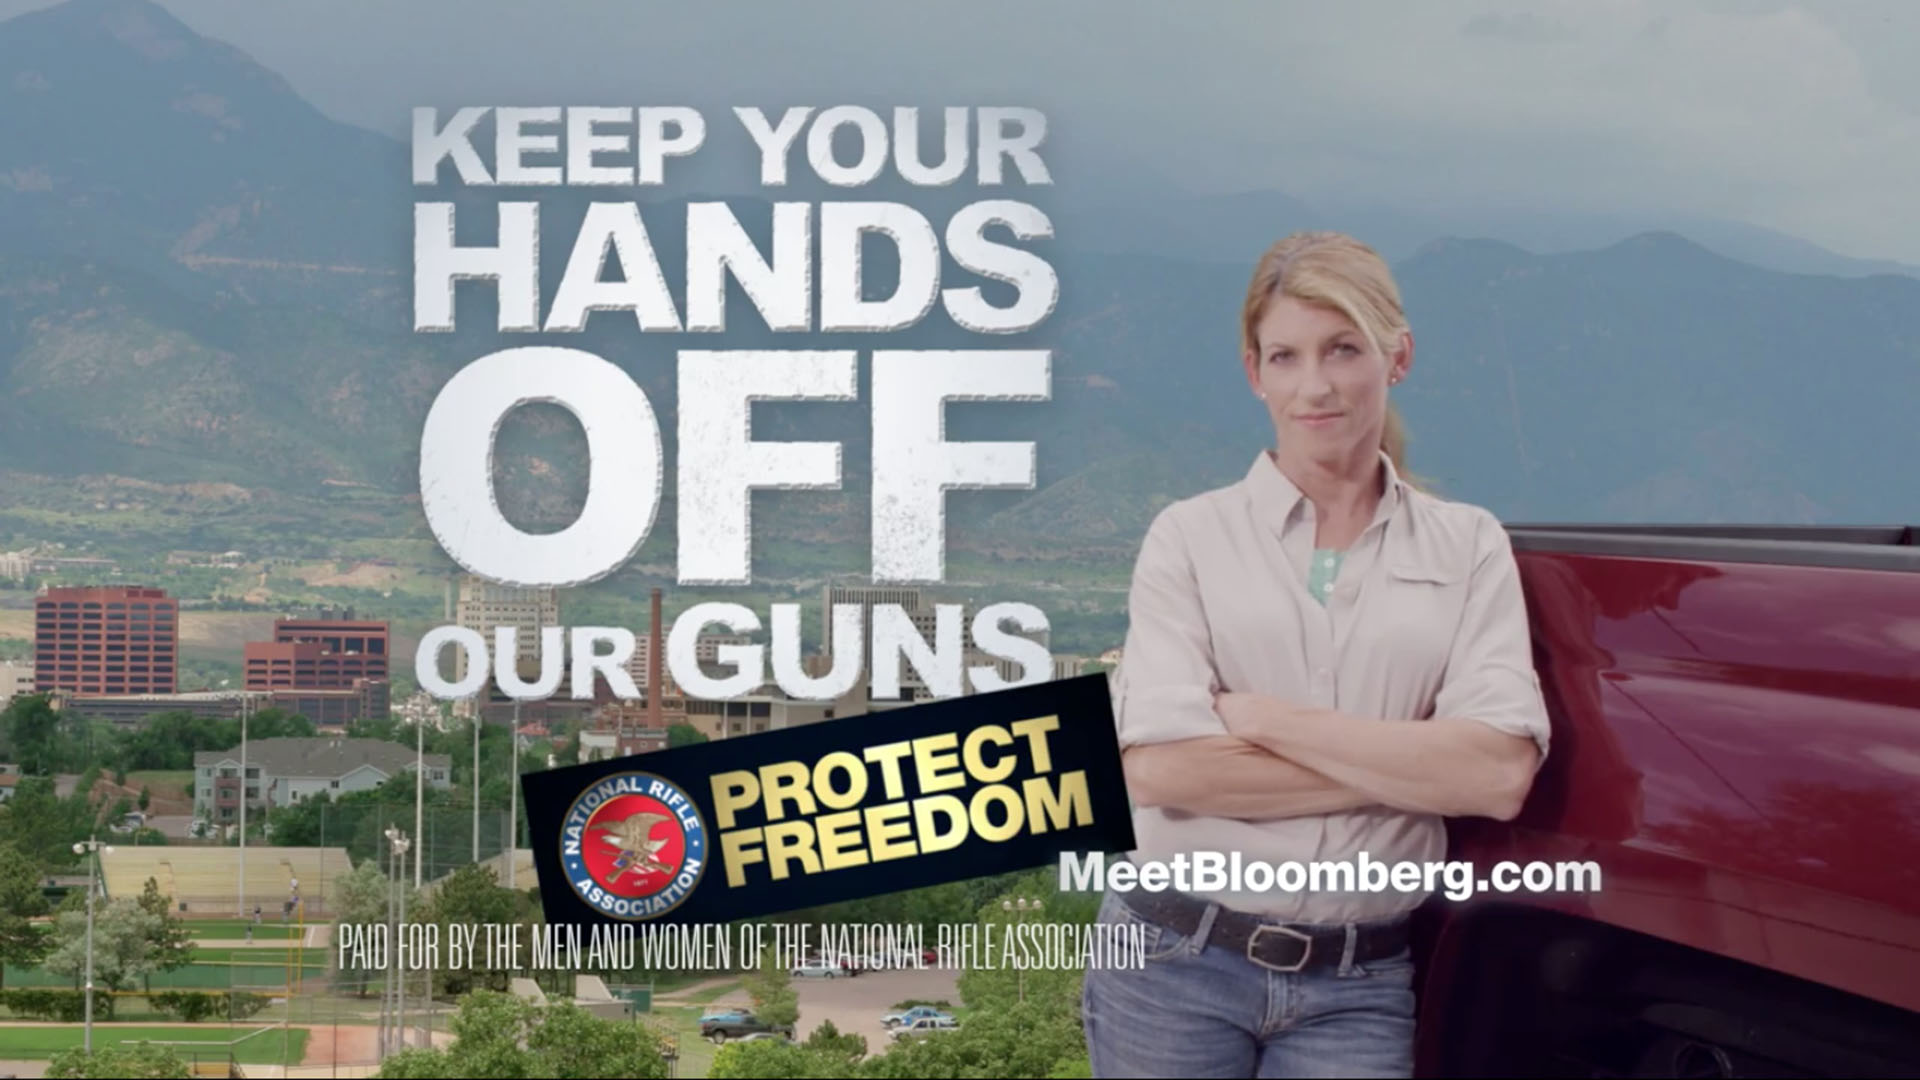 NRA launches ad campaign attacking Michael Bloomberg